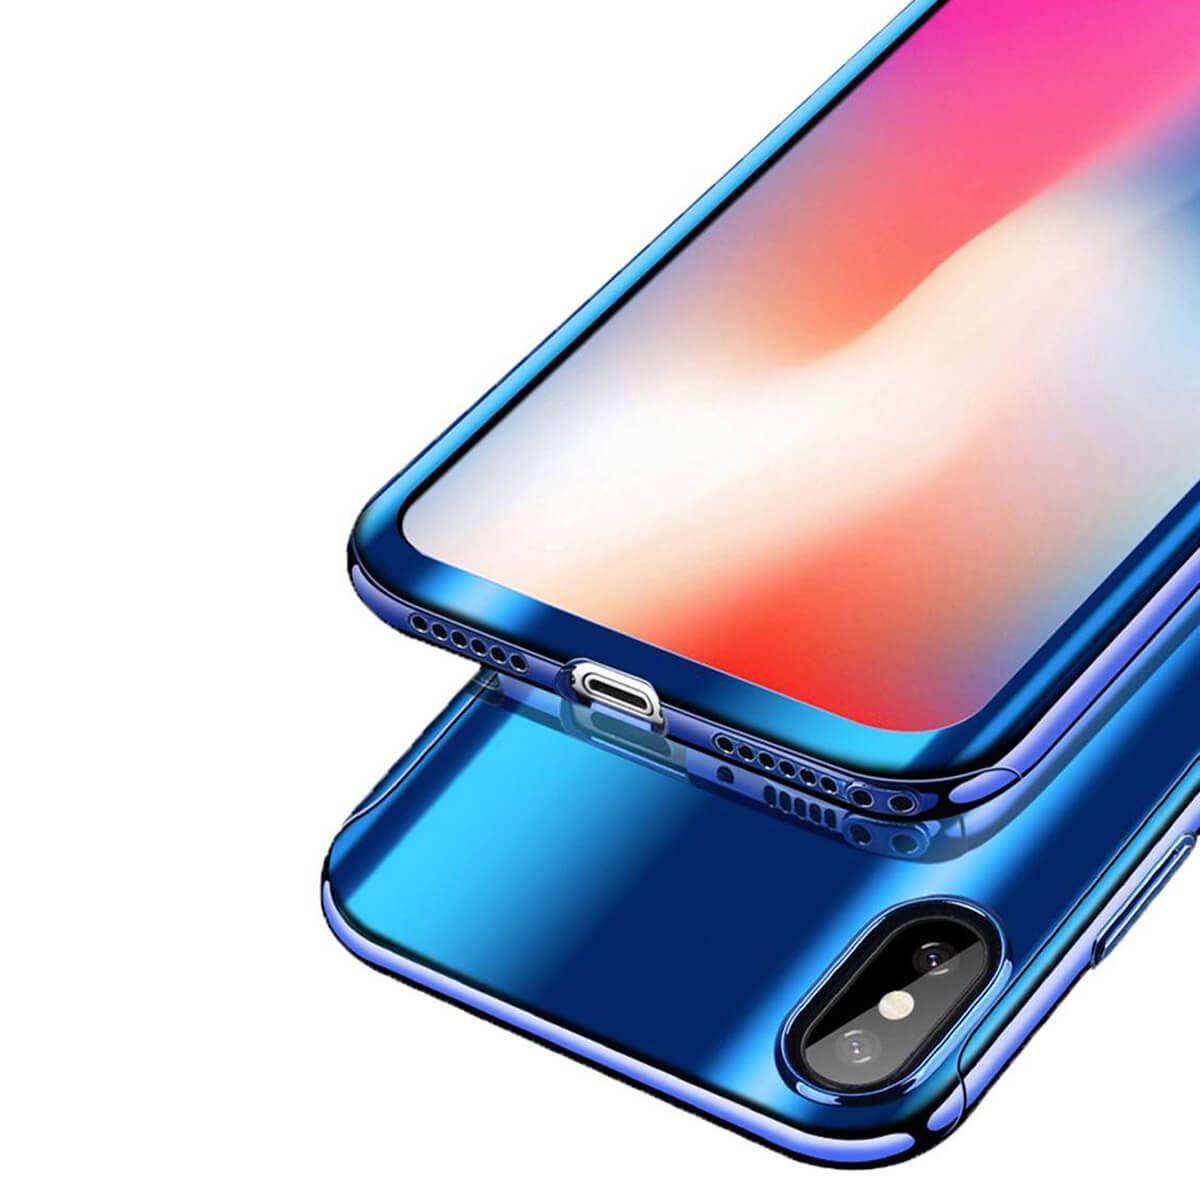 Tempered-Glass-Cover-For-iPhone-X-8-7-Plus-6s-5-Mirror-Hybrid-360-Hard-Thin-Case thumbnail 19